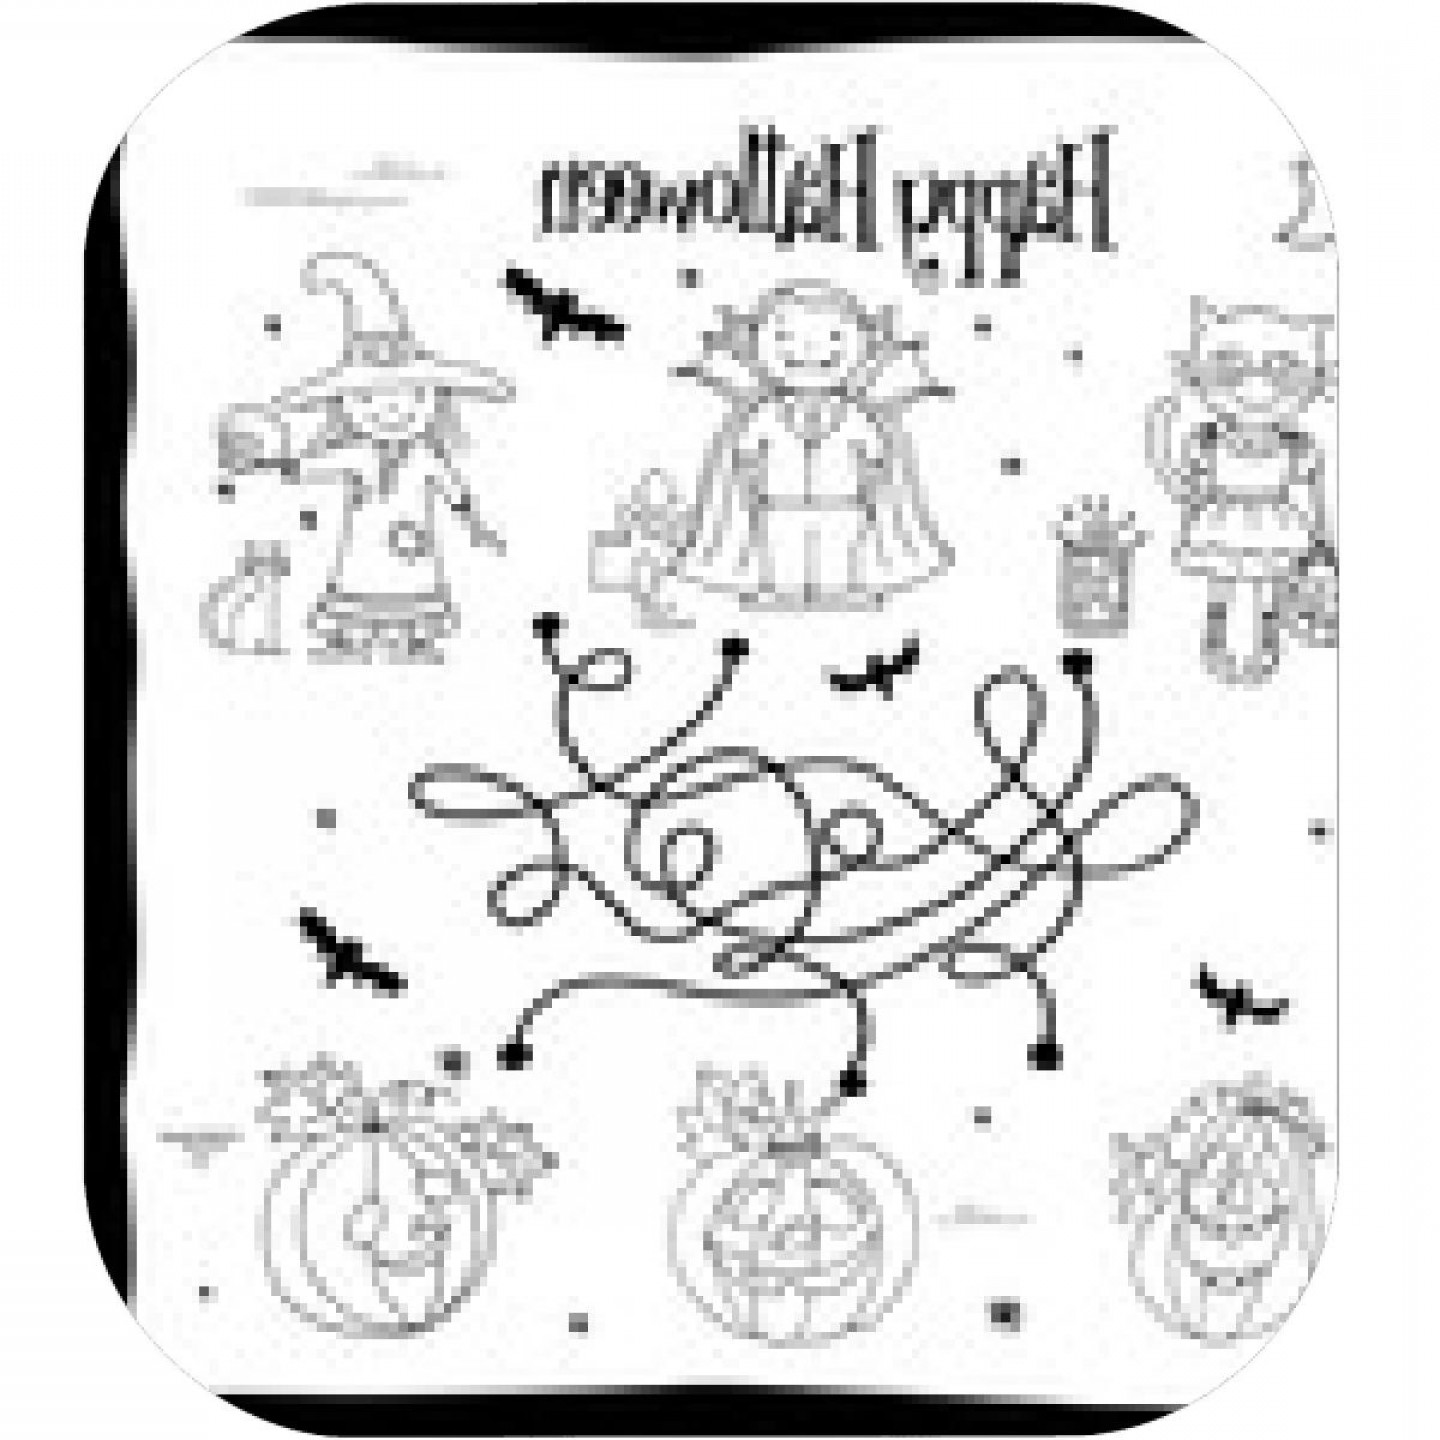 Vector Coloring Sheet: Happy Halloween Coloring Sheet With Labyrinth Kids In Costumes And Pumpkins Hand Drawn Vector Illustration